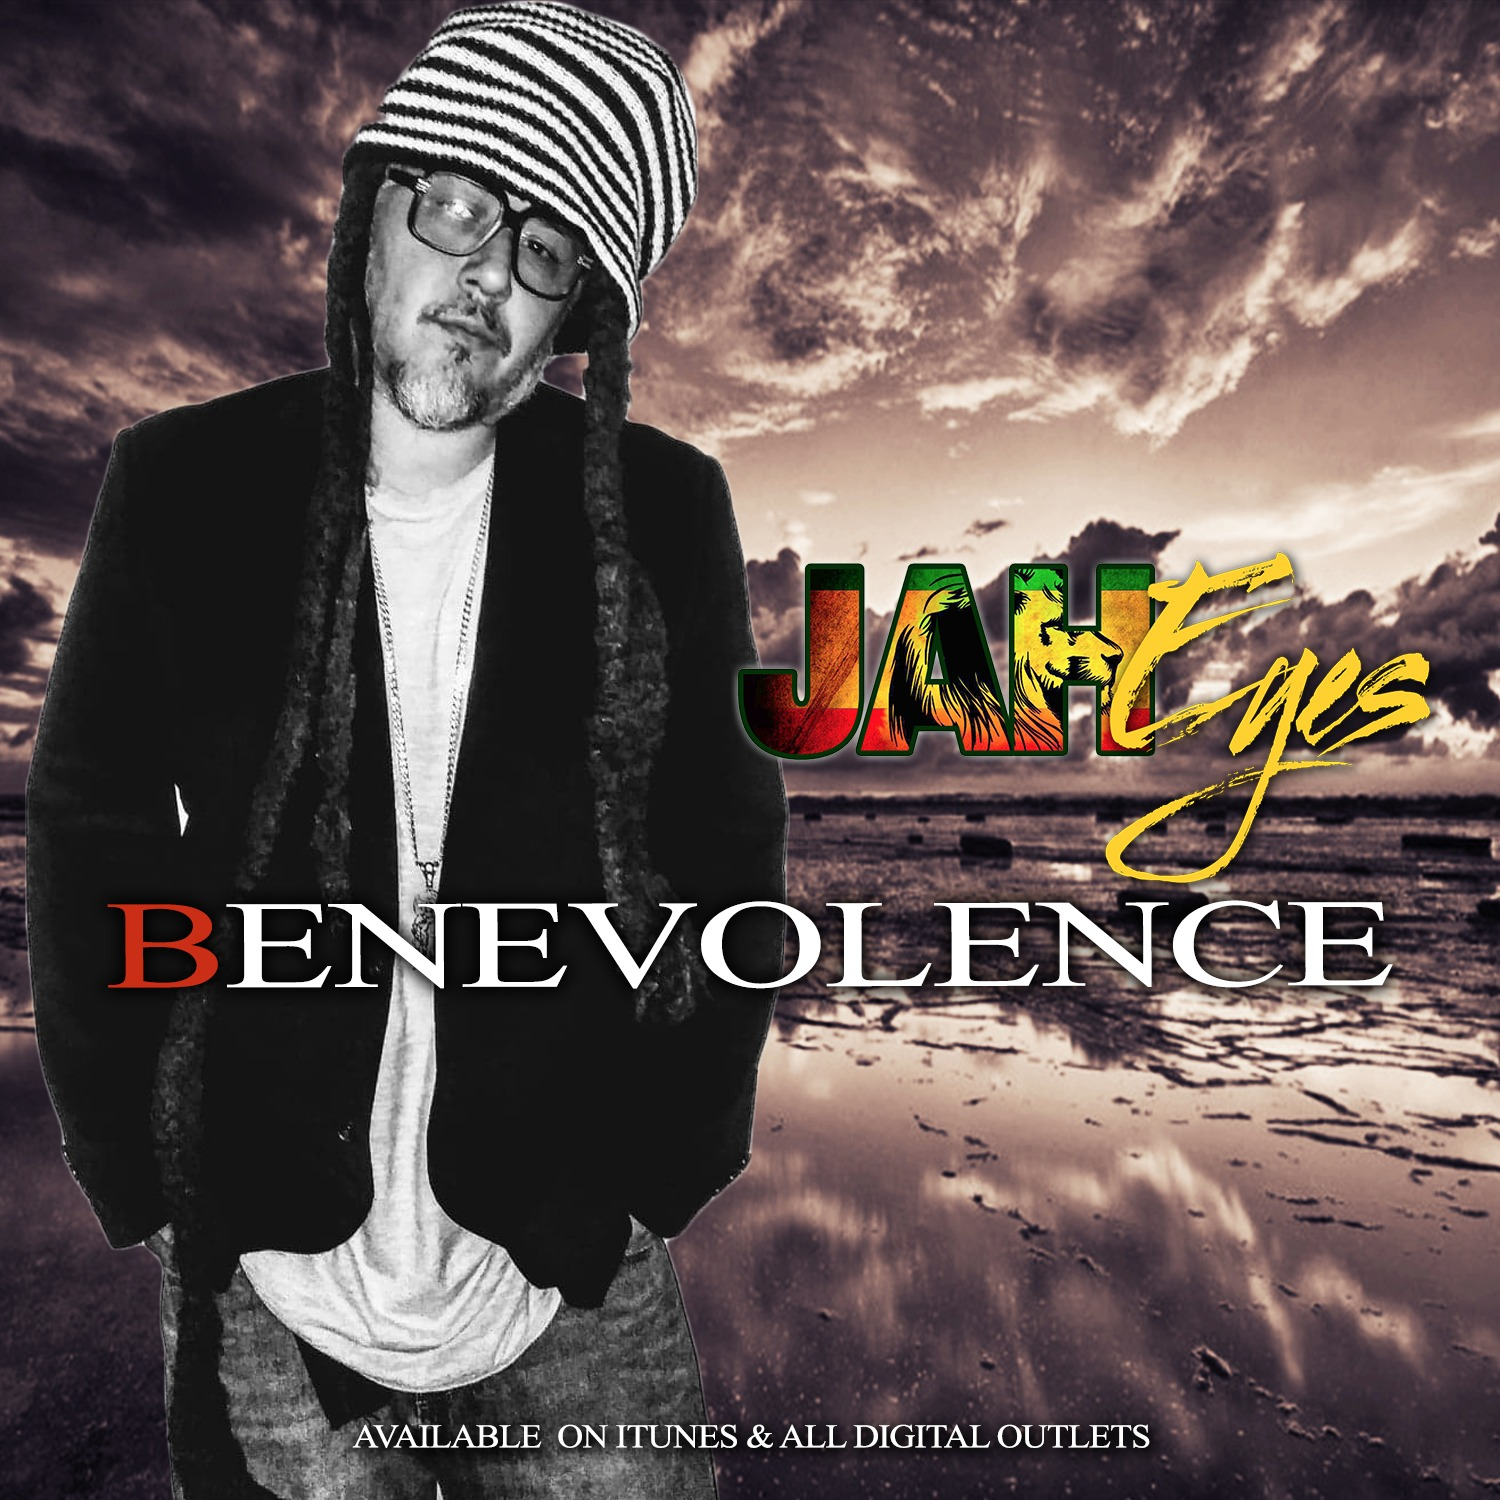 Jah Eyes - Benevolence